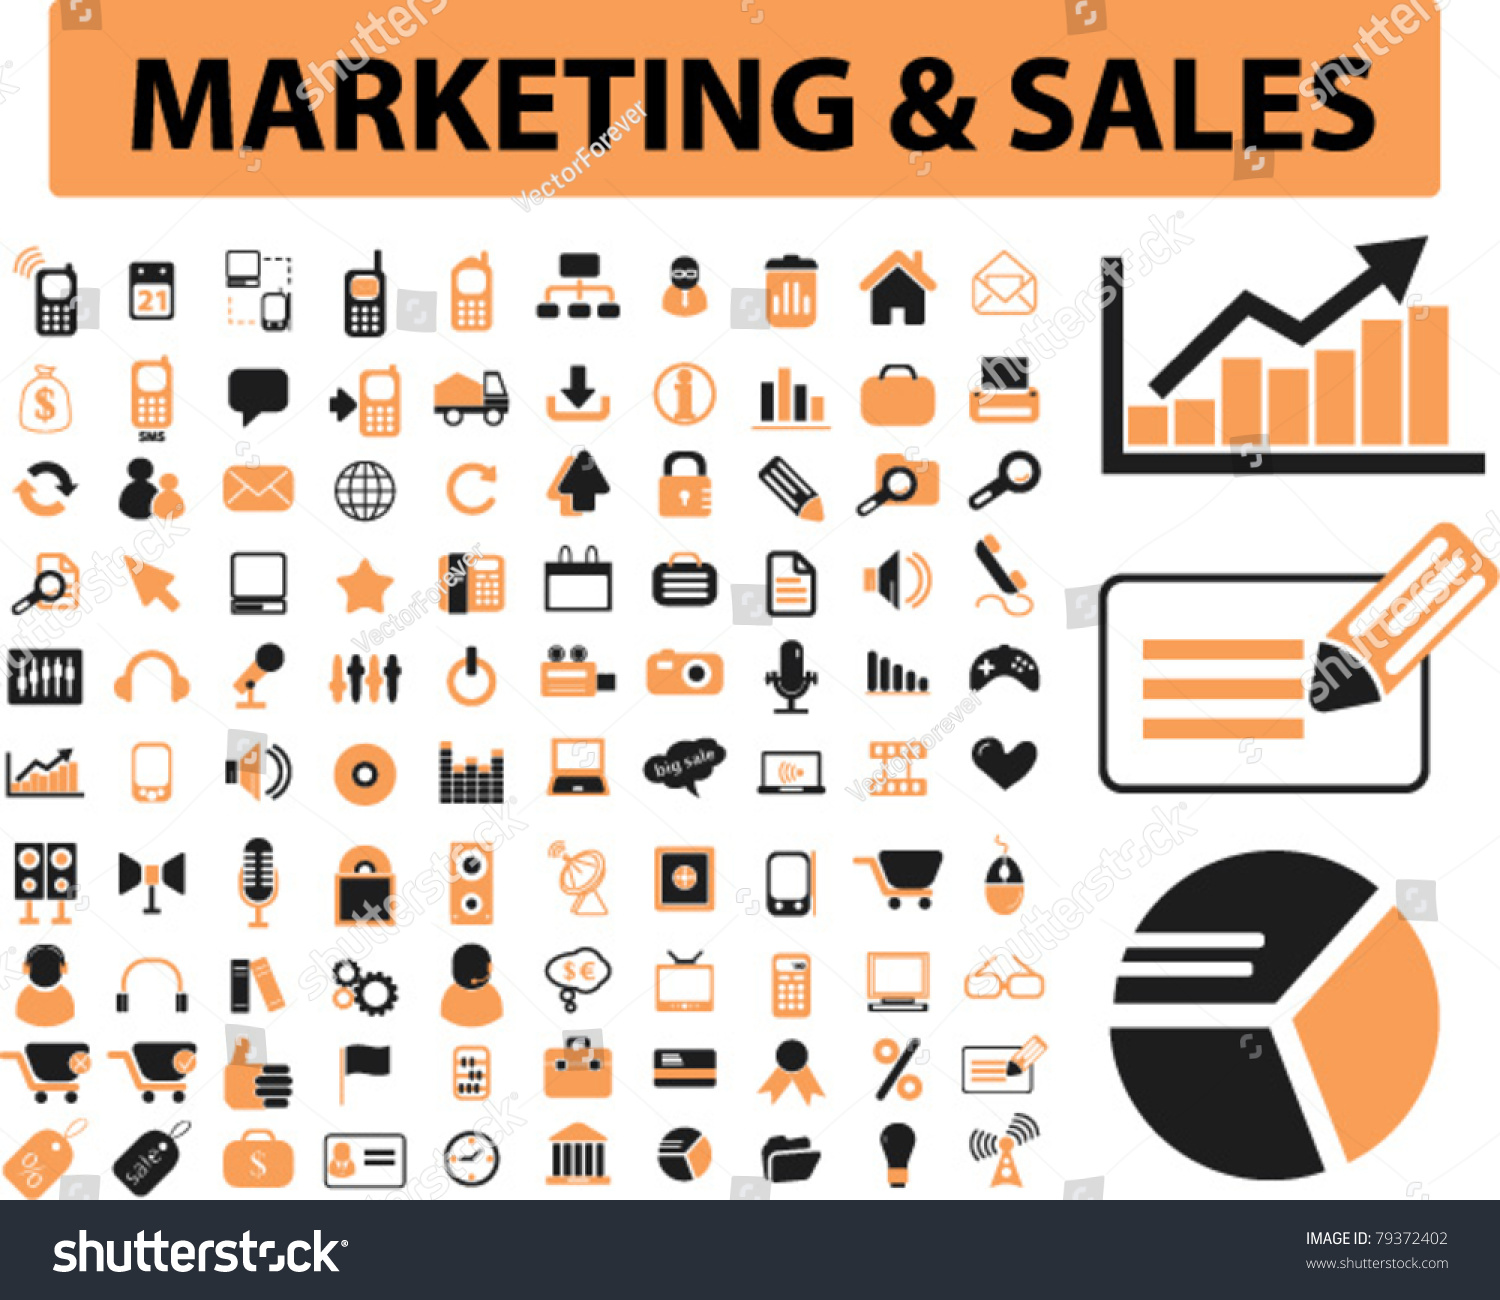 Marketing Sales: Marketing Sales Icons Signs Vector Illustrations Stock